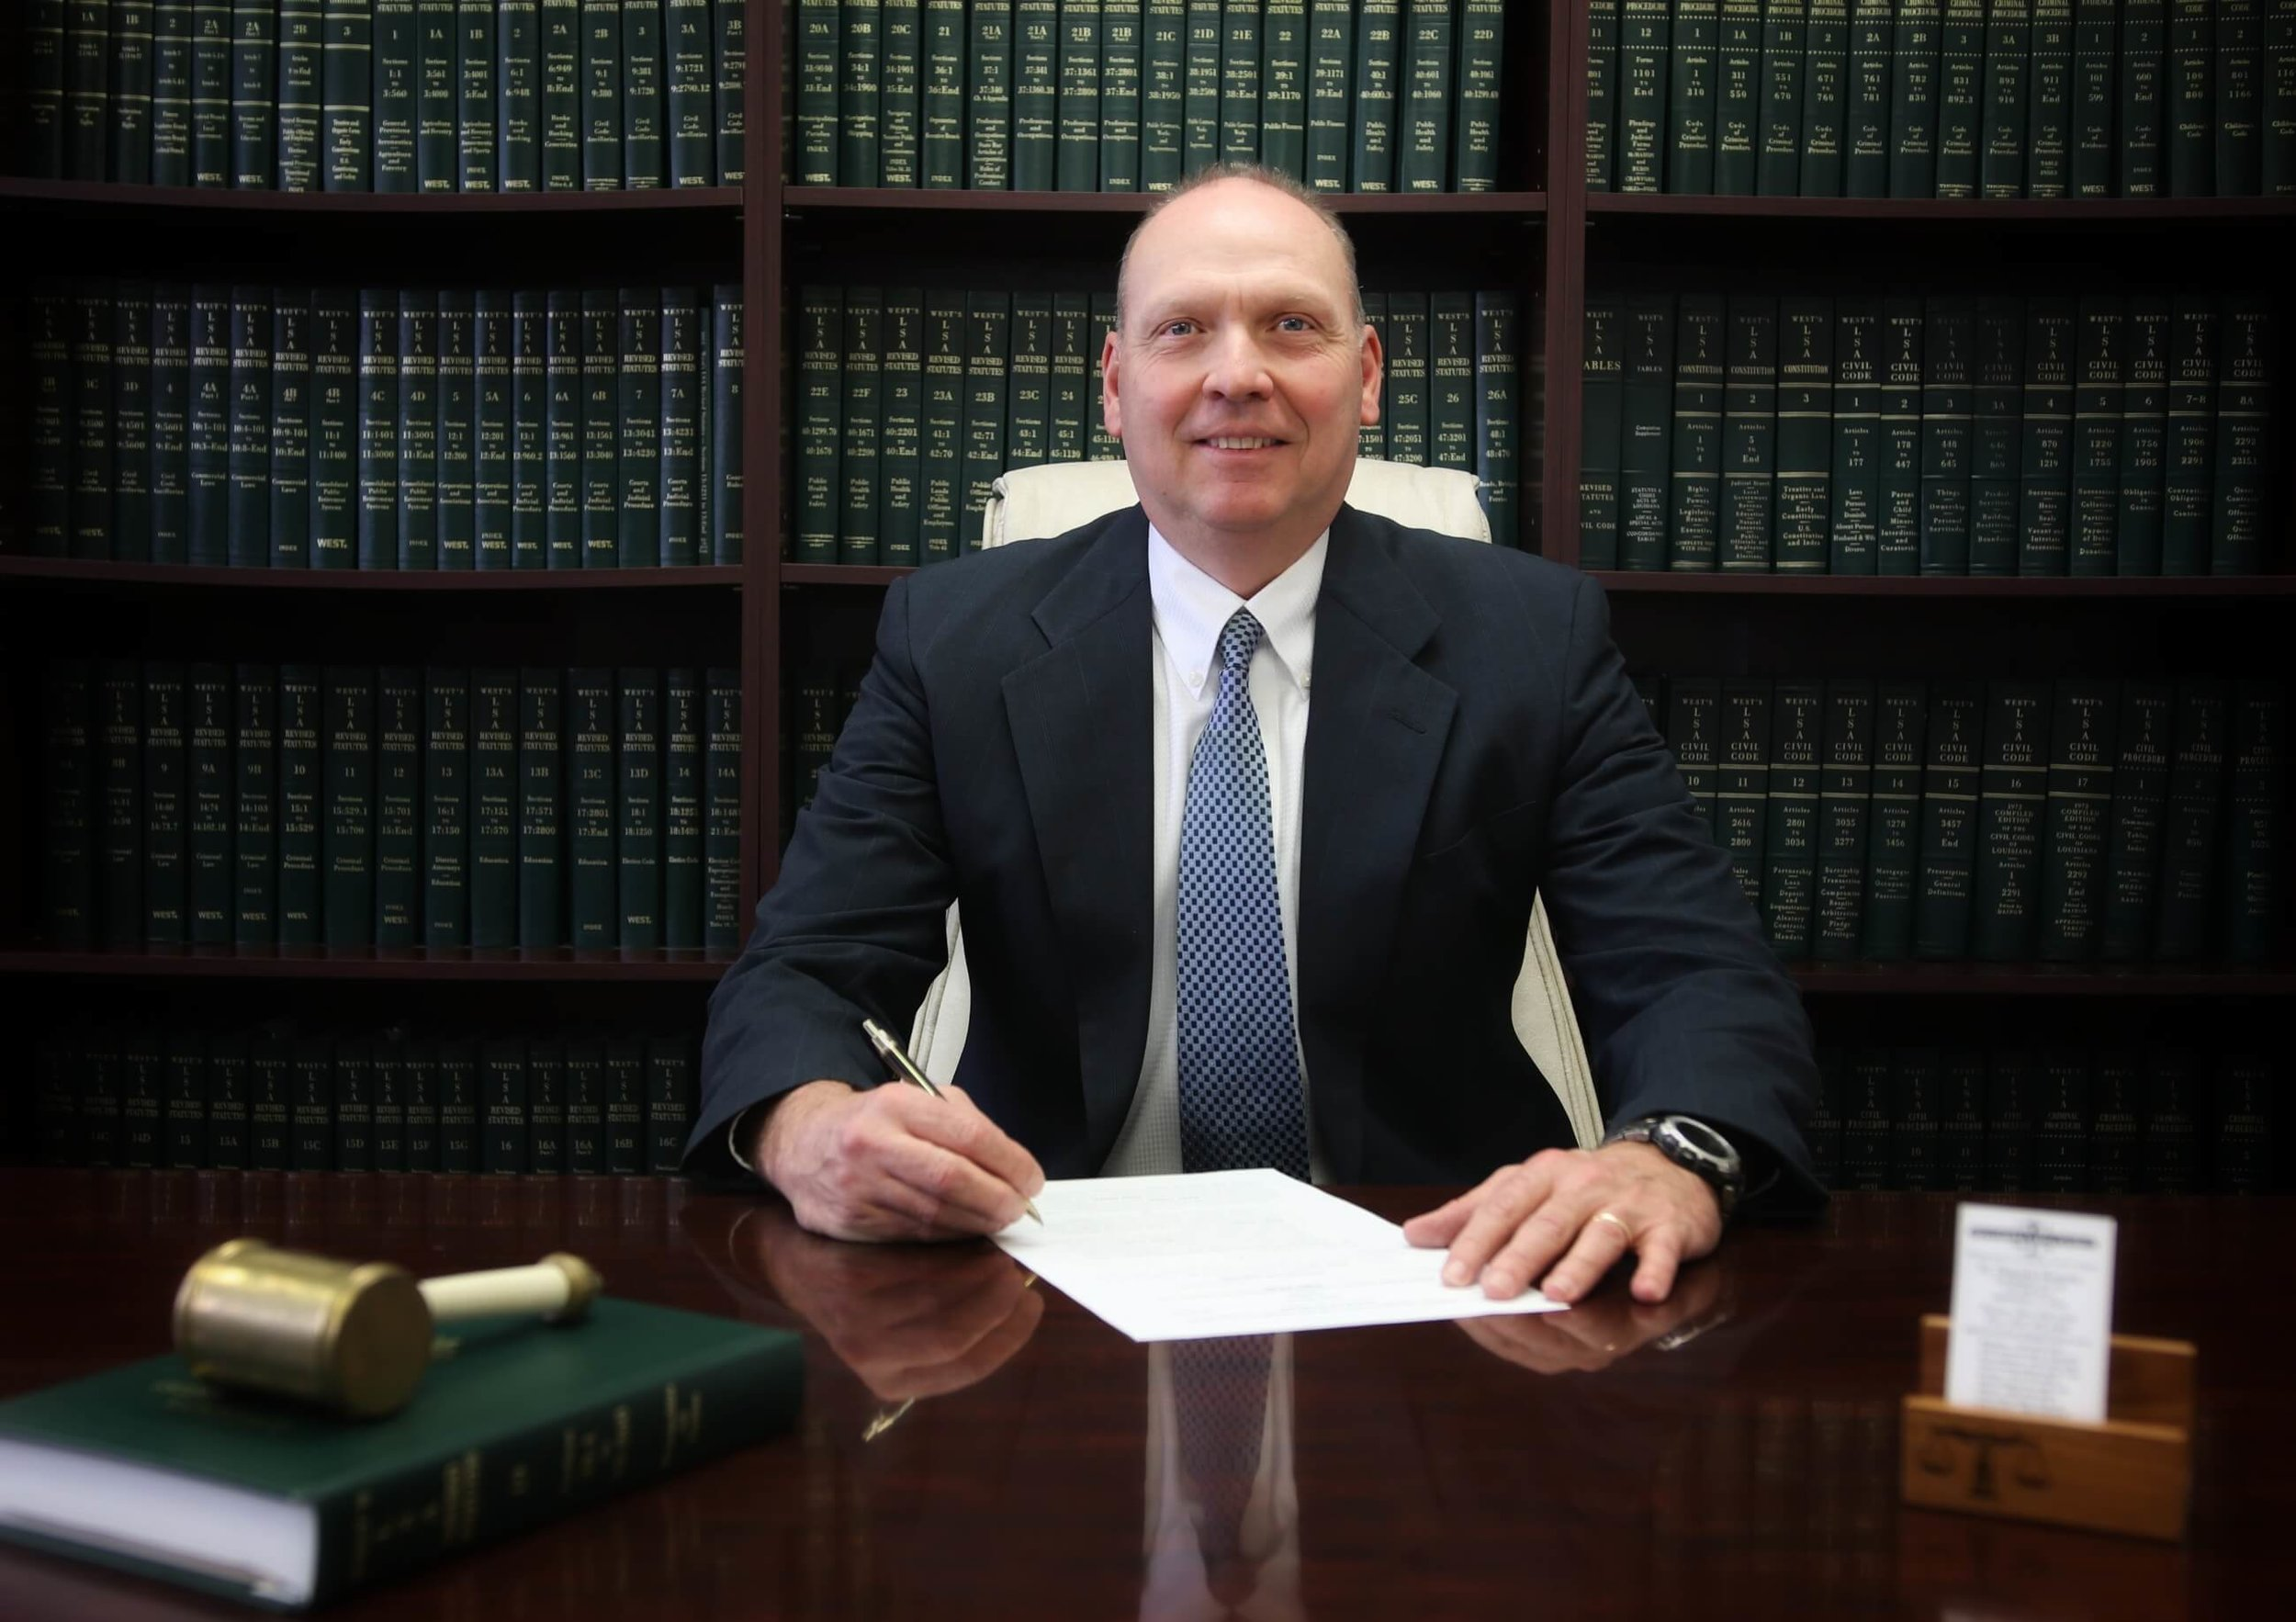 H. Patrick Rooney   Pat@SouthernLegalClinics.com